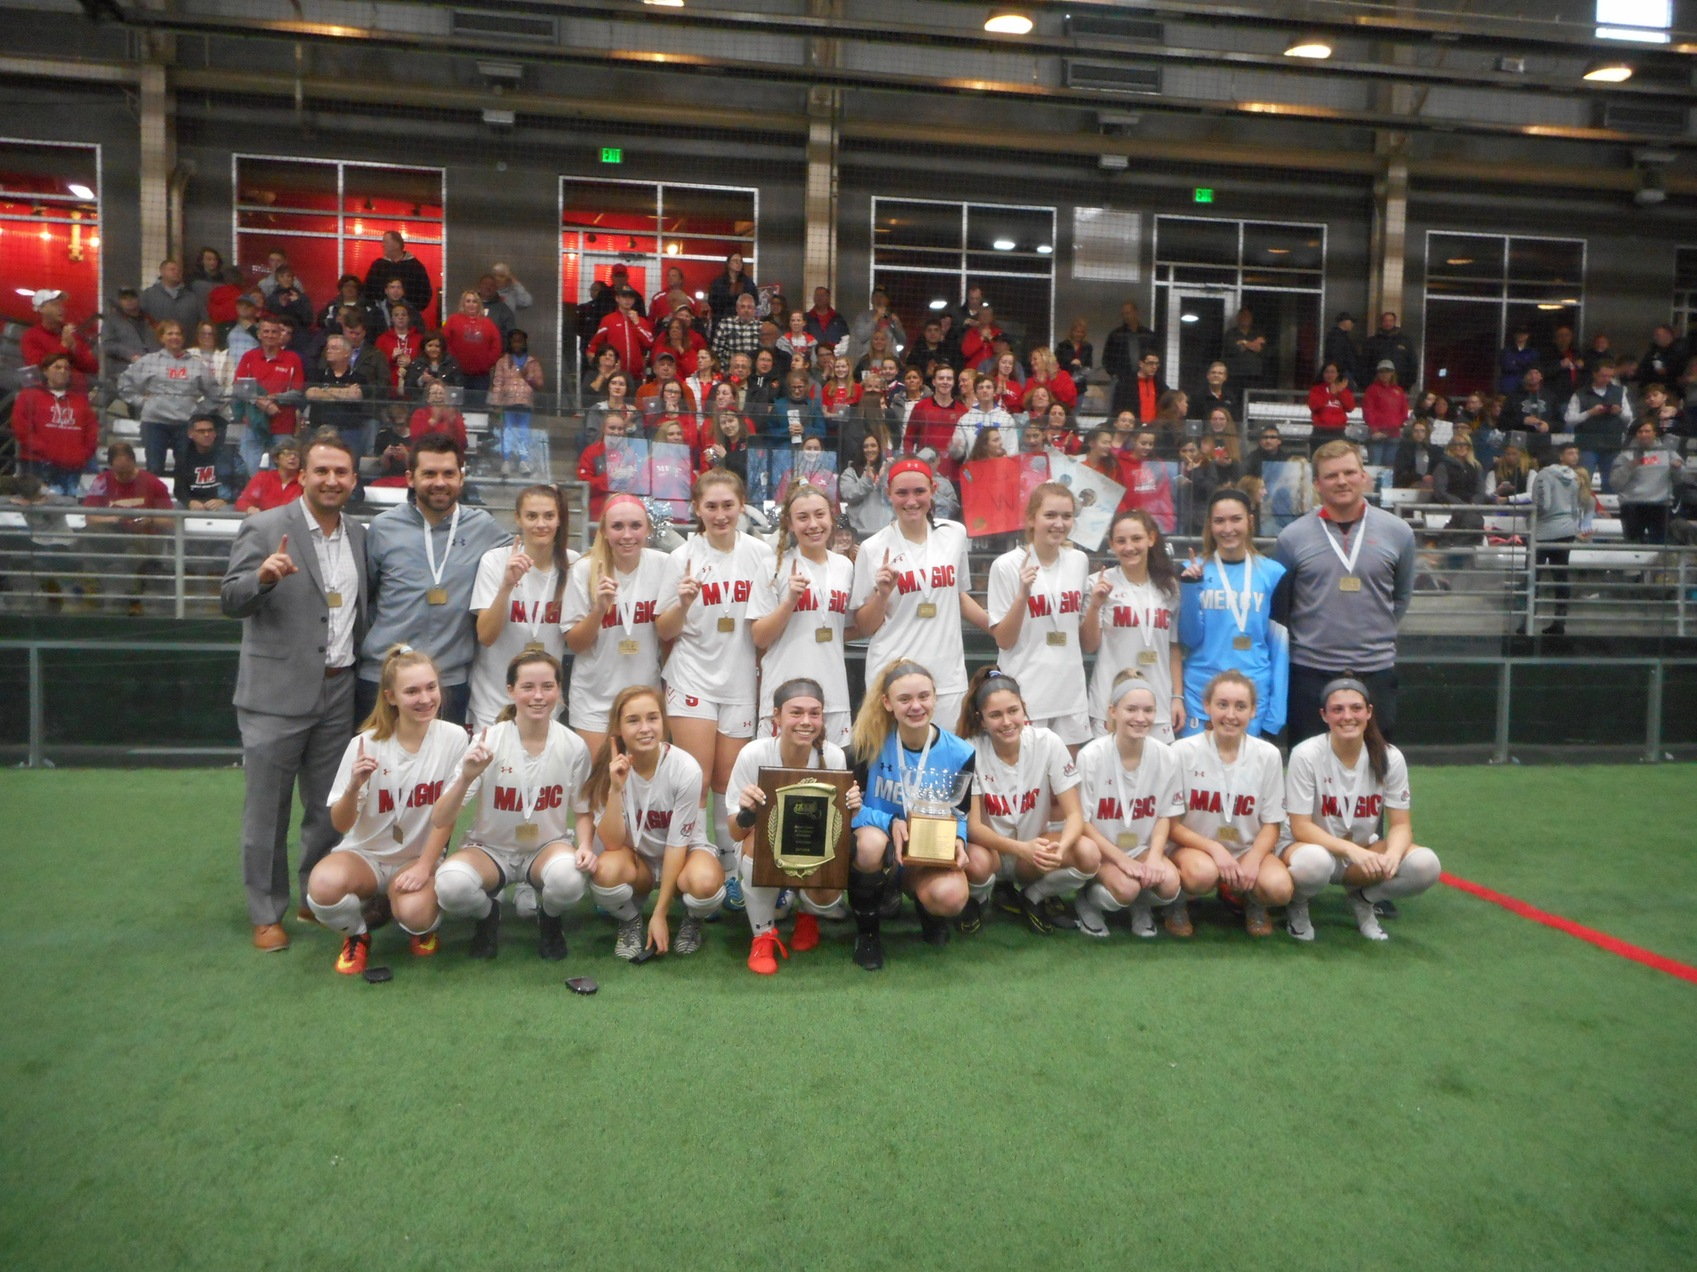 Mercy defeats Notre Dame Prep in indoor soccer to claim first A Conference crown